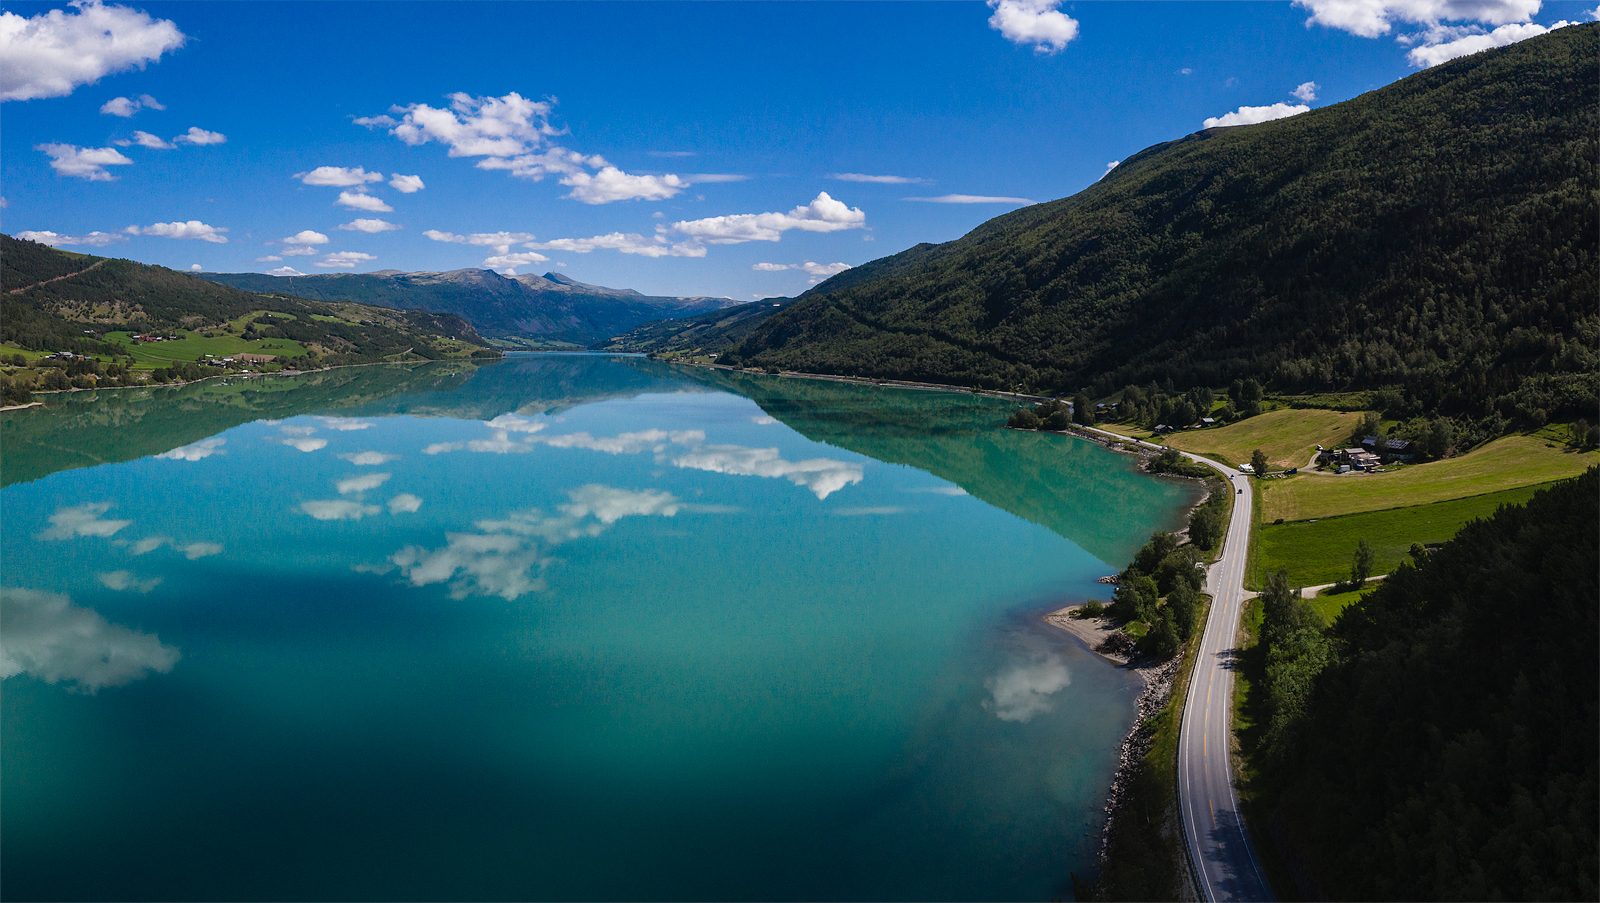 norge-214-Pano.jpg